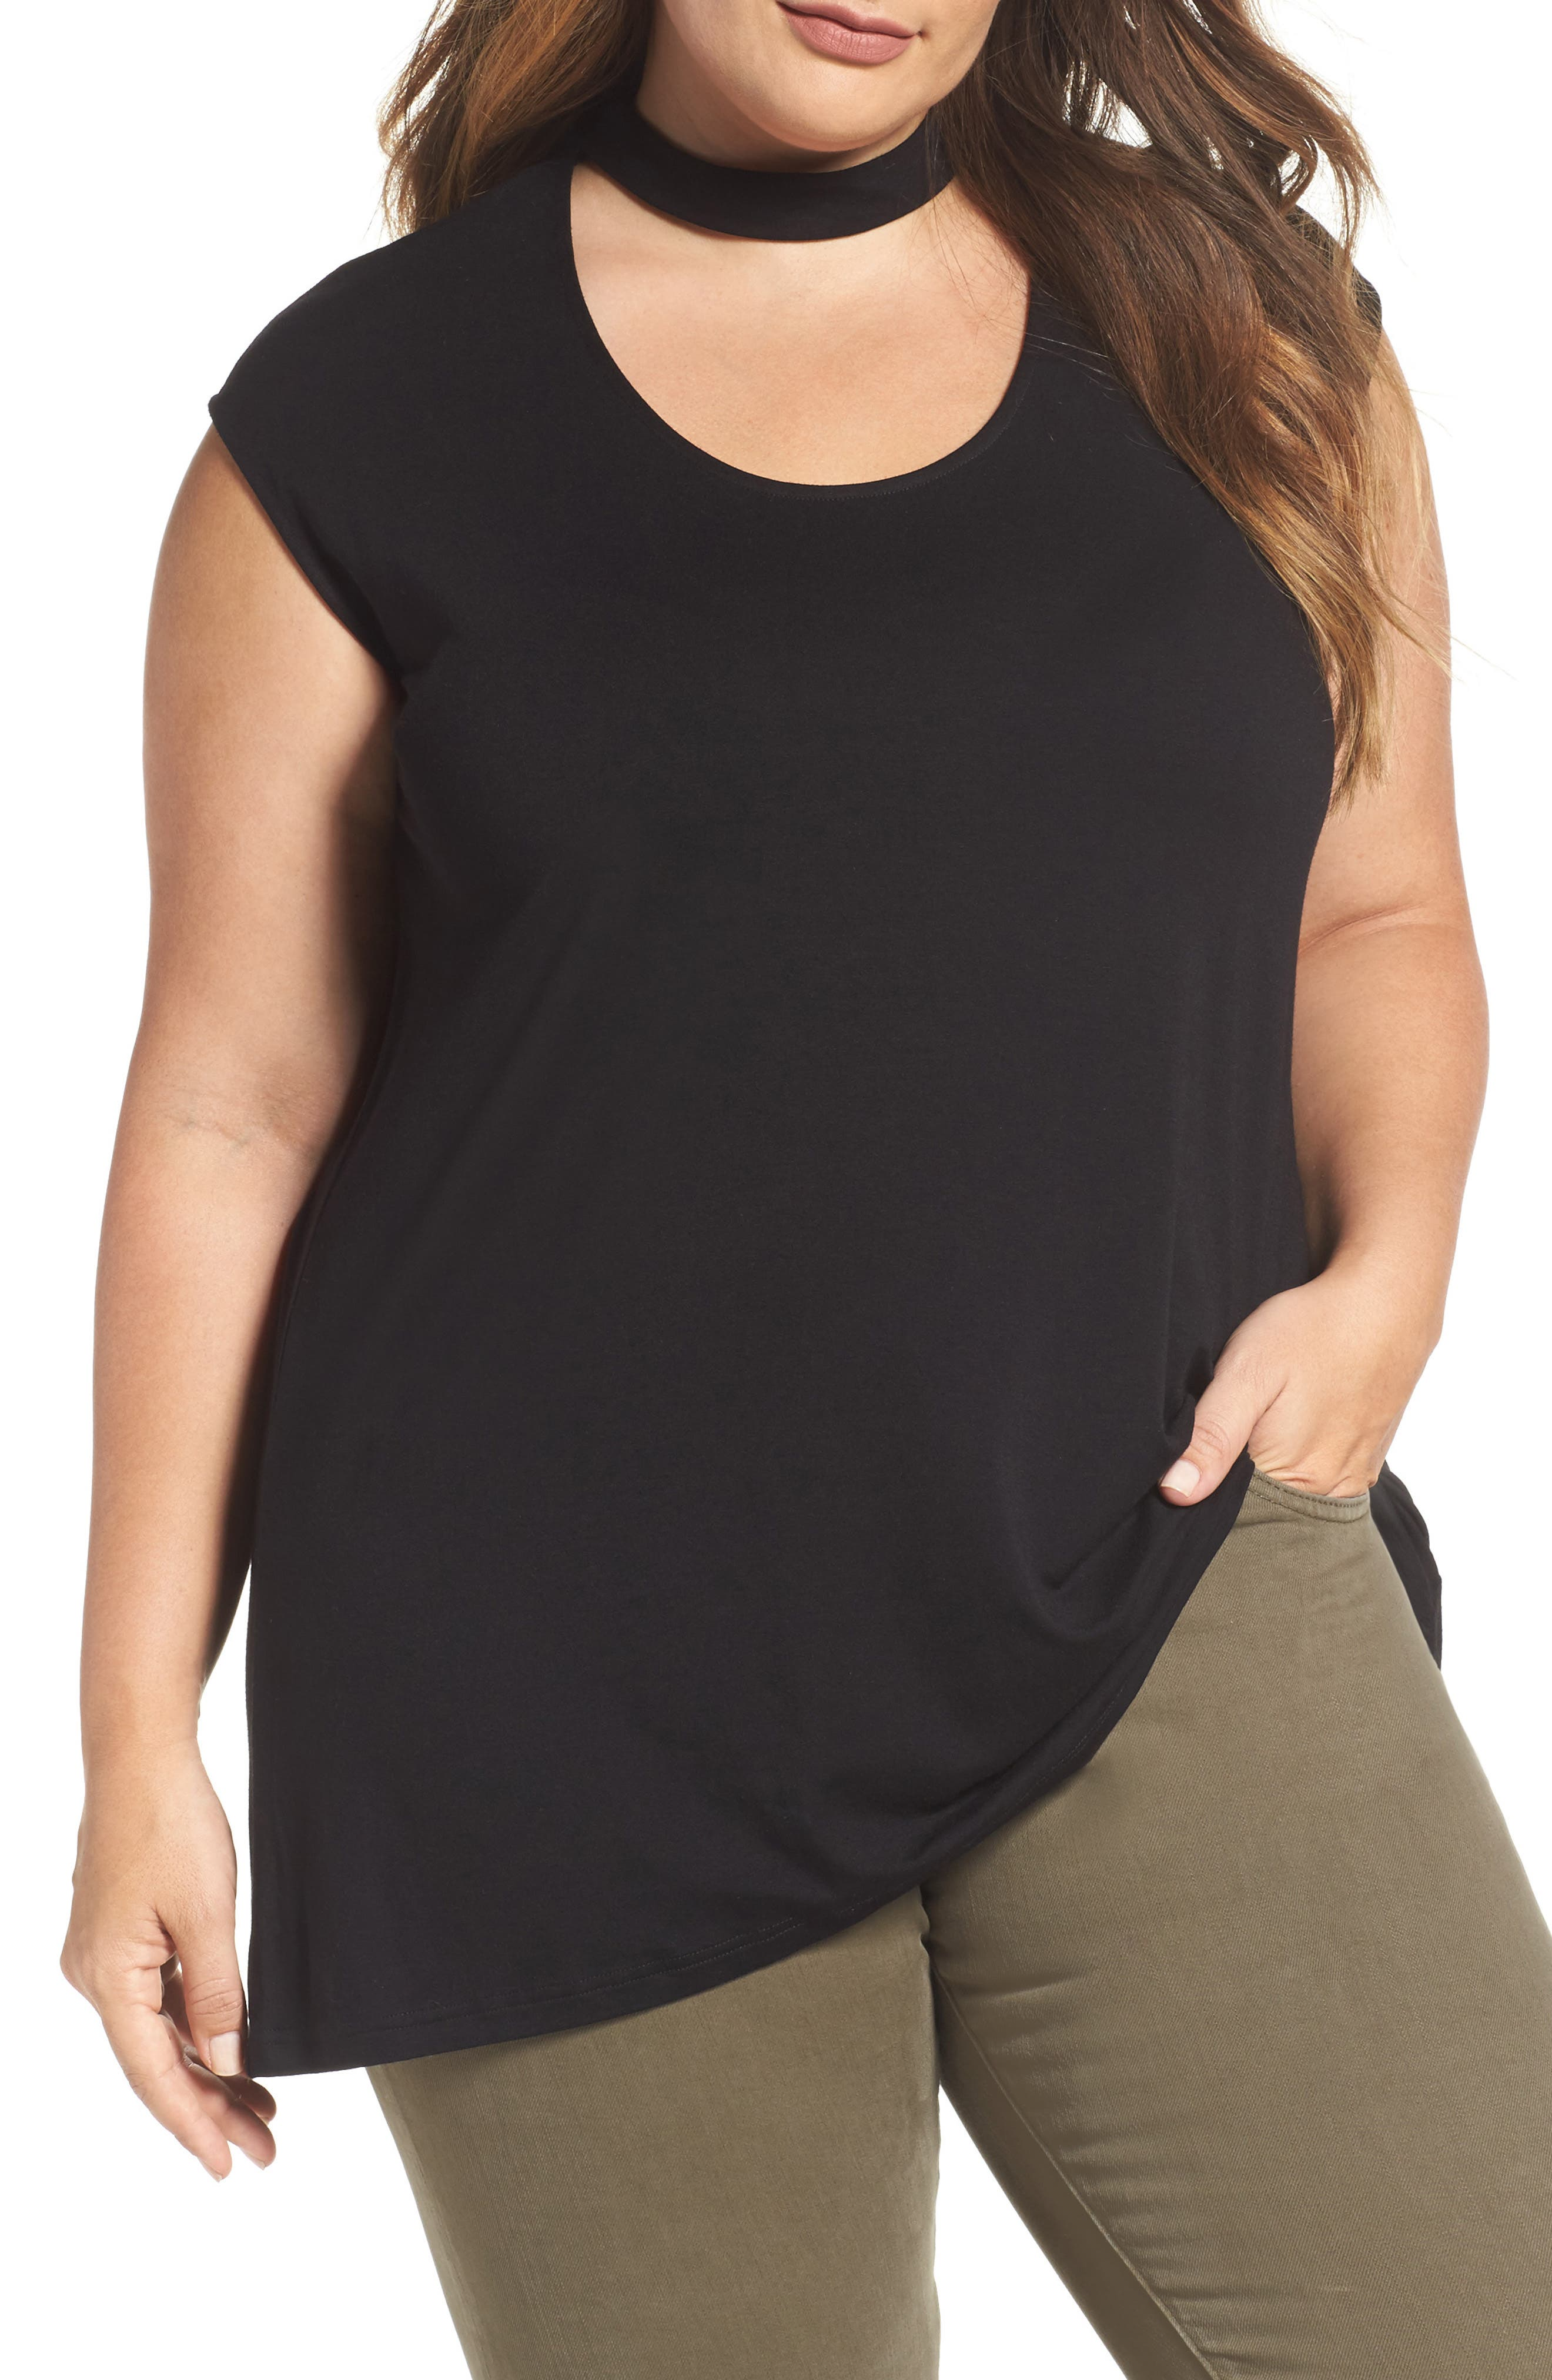 Main Image - Vince Camuto Choker Neck High/Low Top (Plus Size)